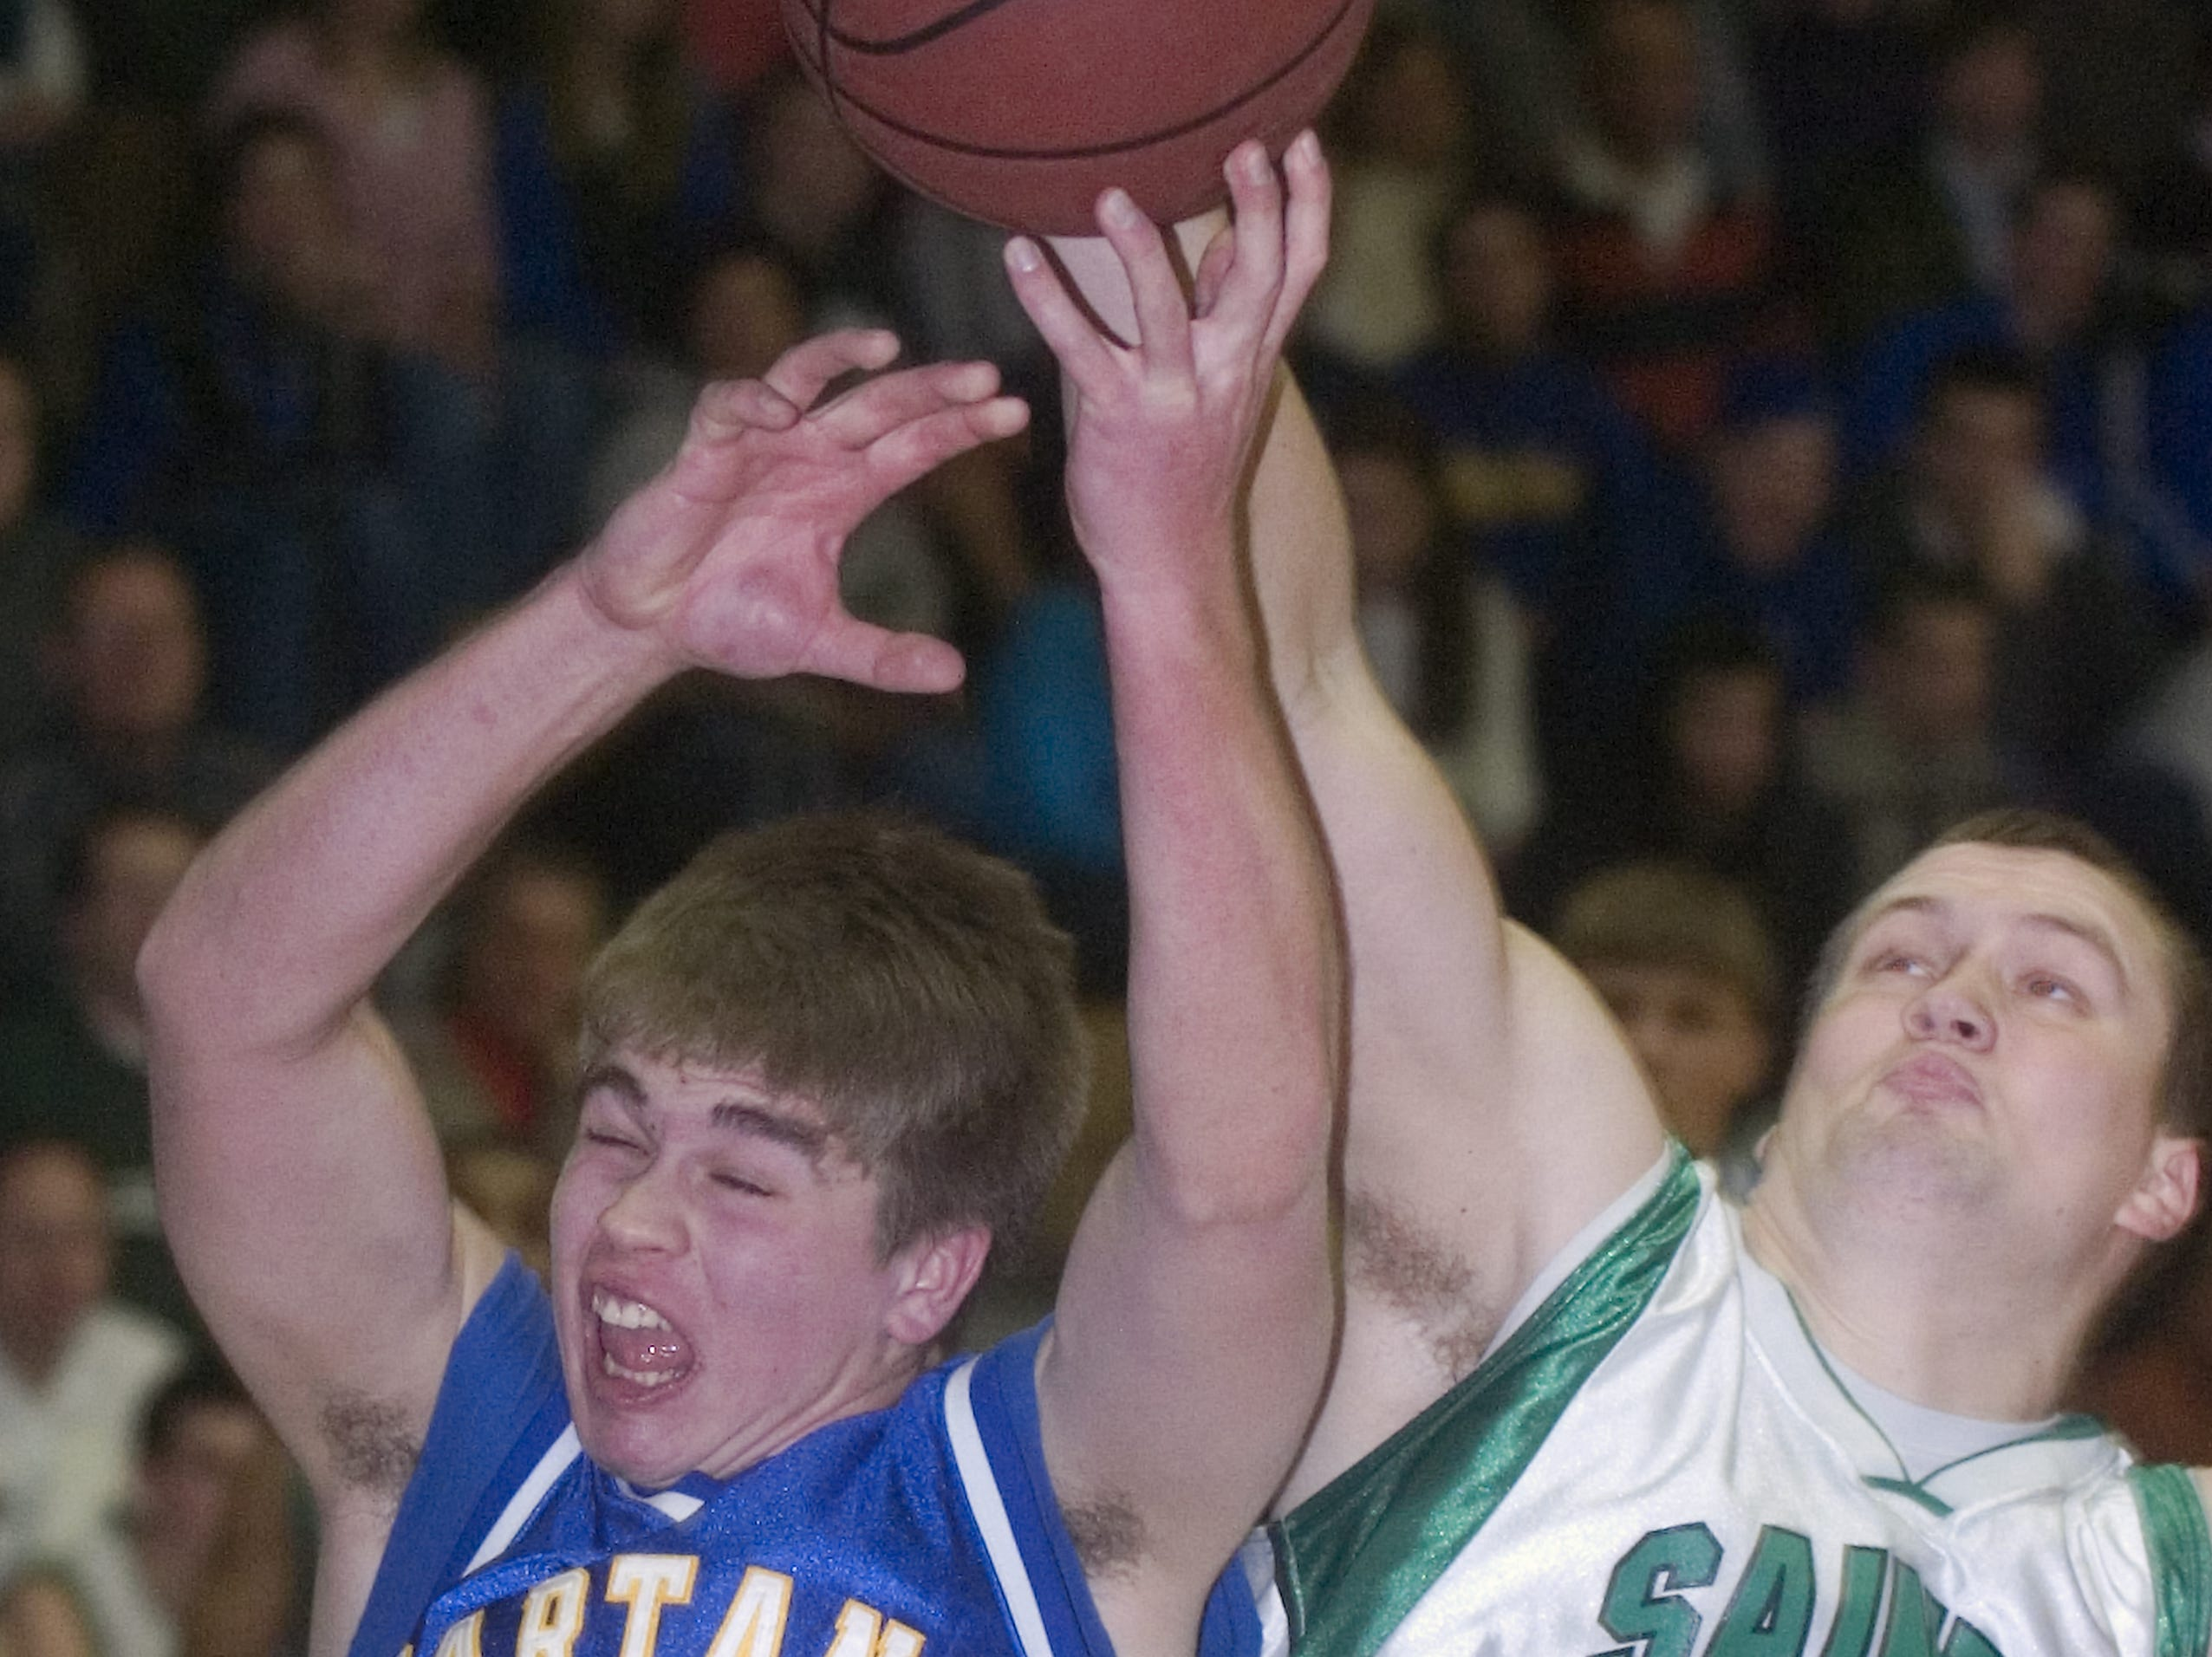 2009: Seton Catholic Central's Chris Furner, right, blocks a shot by Maine-Endwell's Brian Ruby in the second quarter of Saturday's game at Seton.